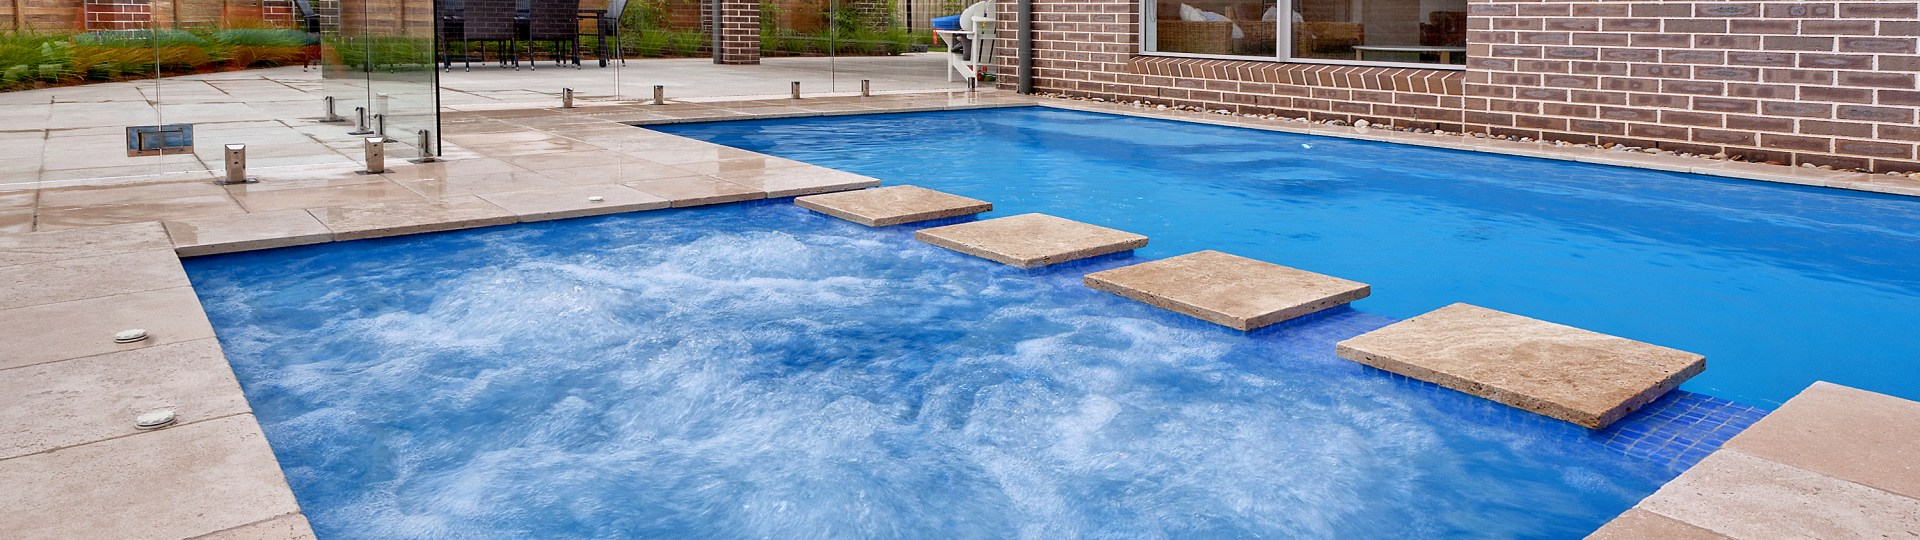 Selecting pool material - fibreglass or concrete